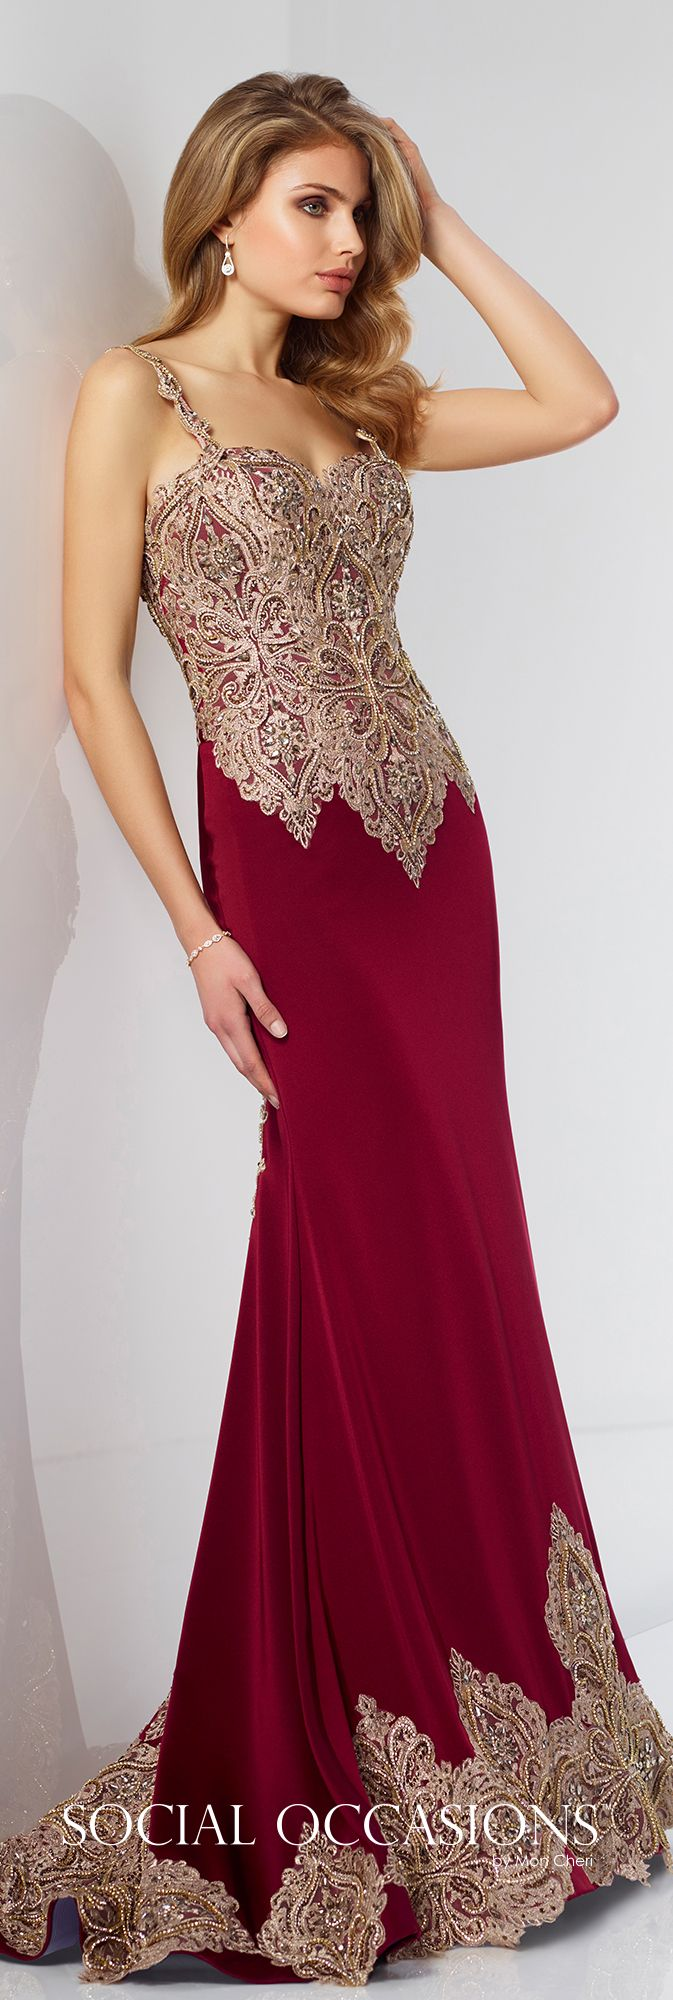 Wedding guest dresses pinterest formal metallic and gowns